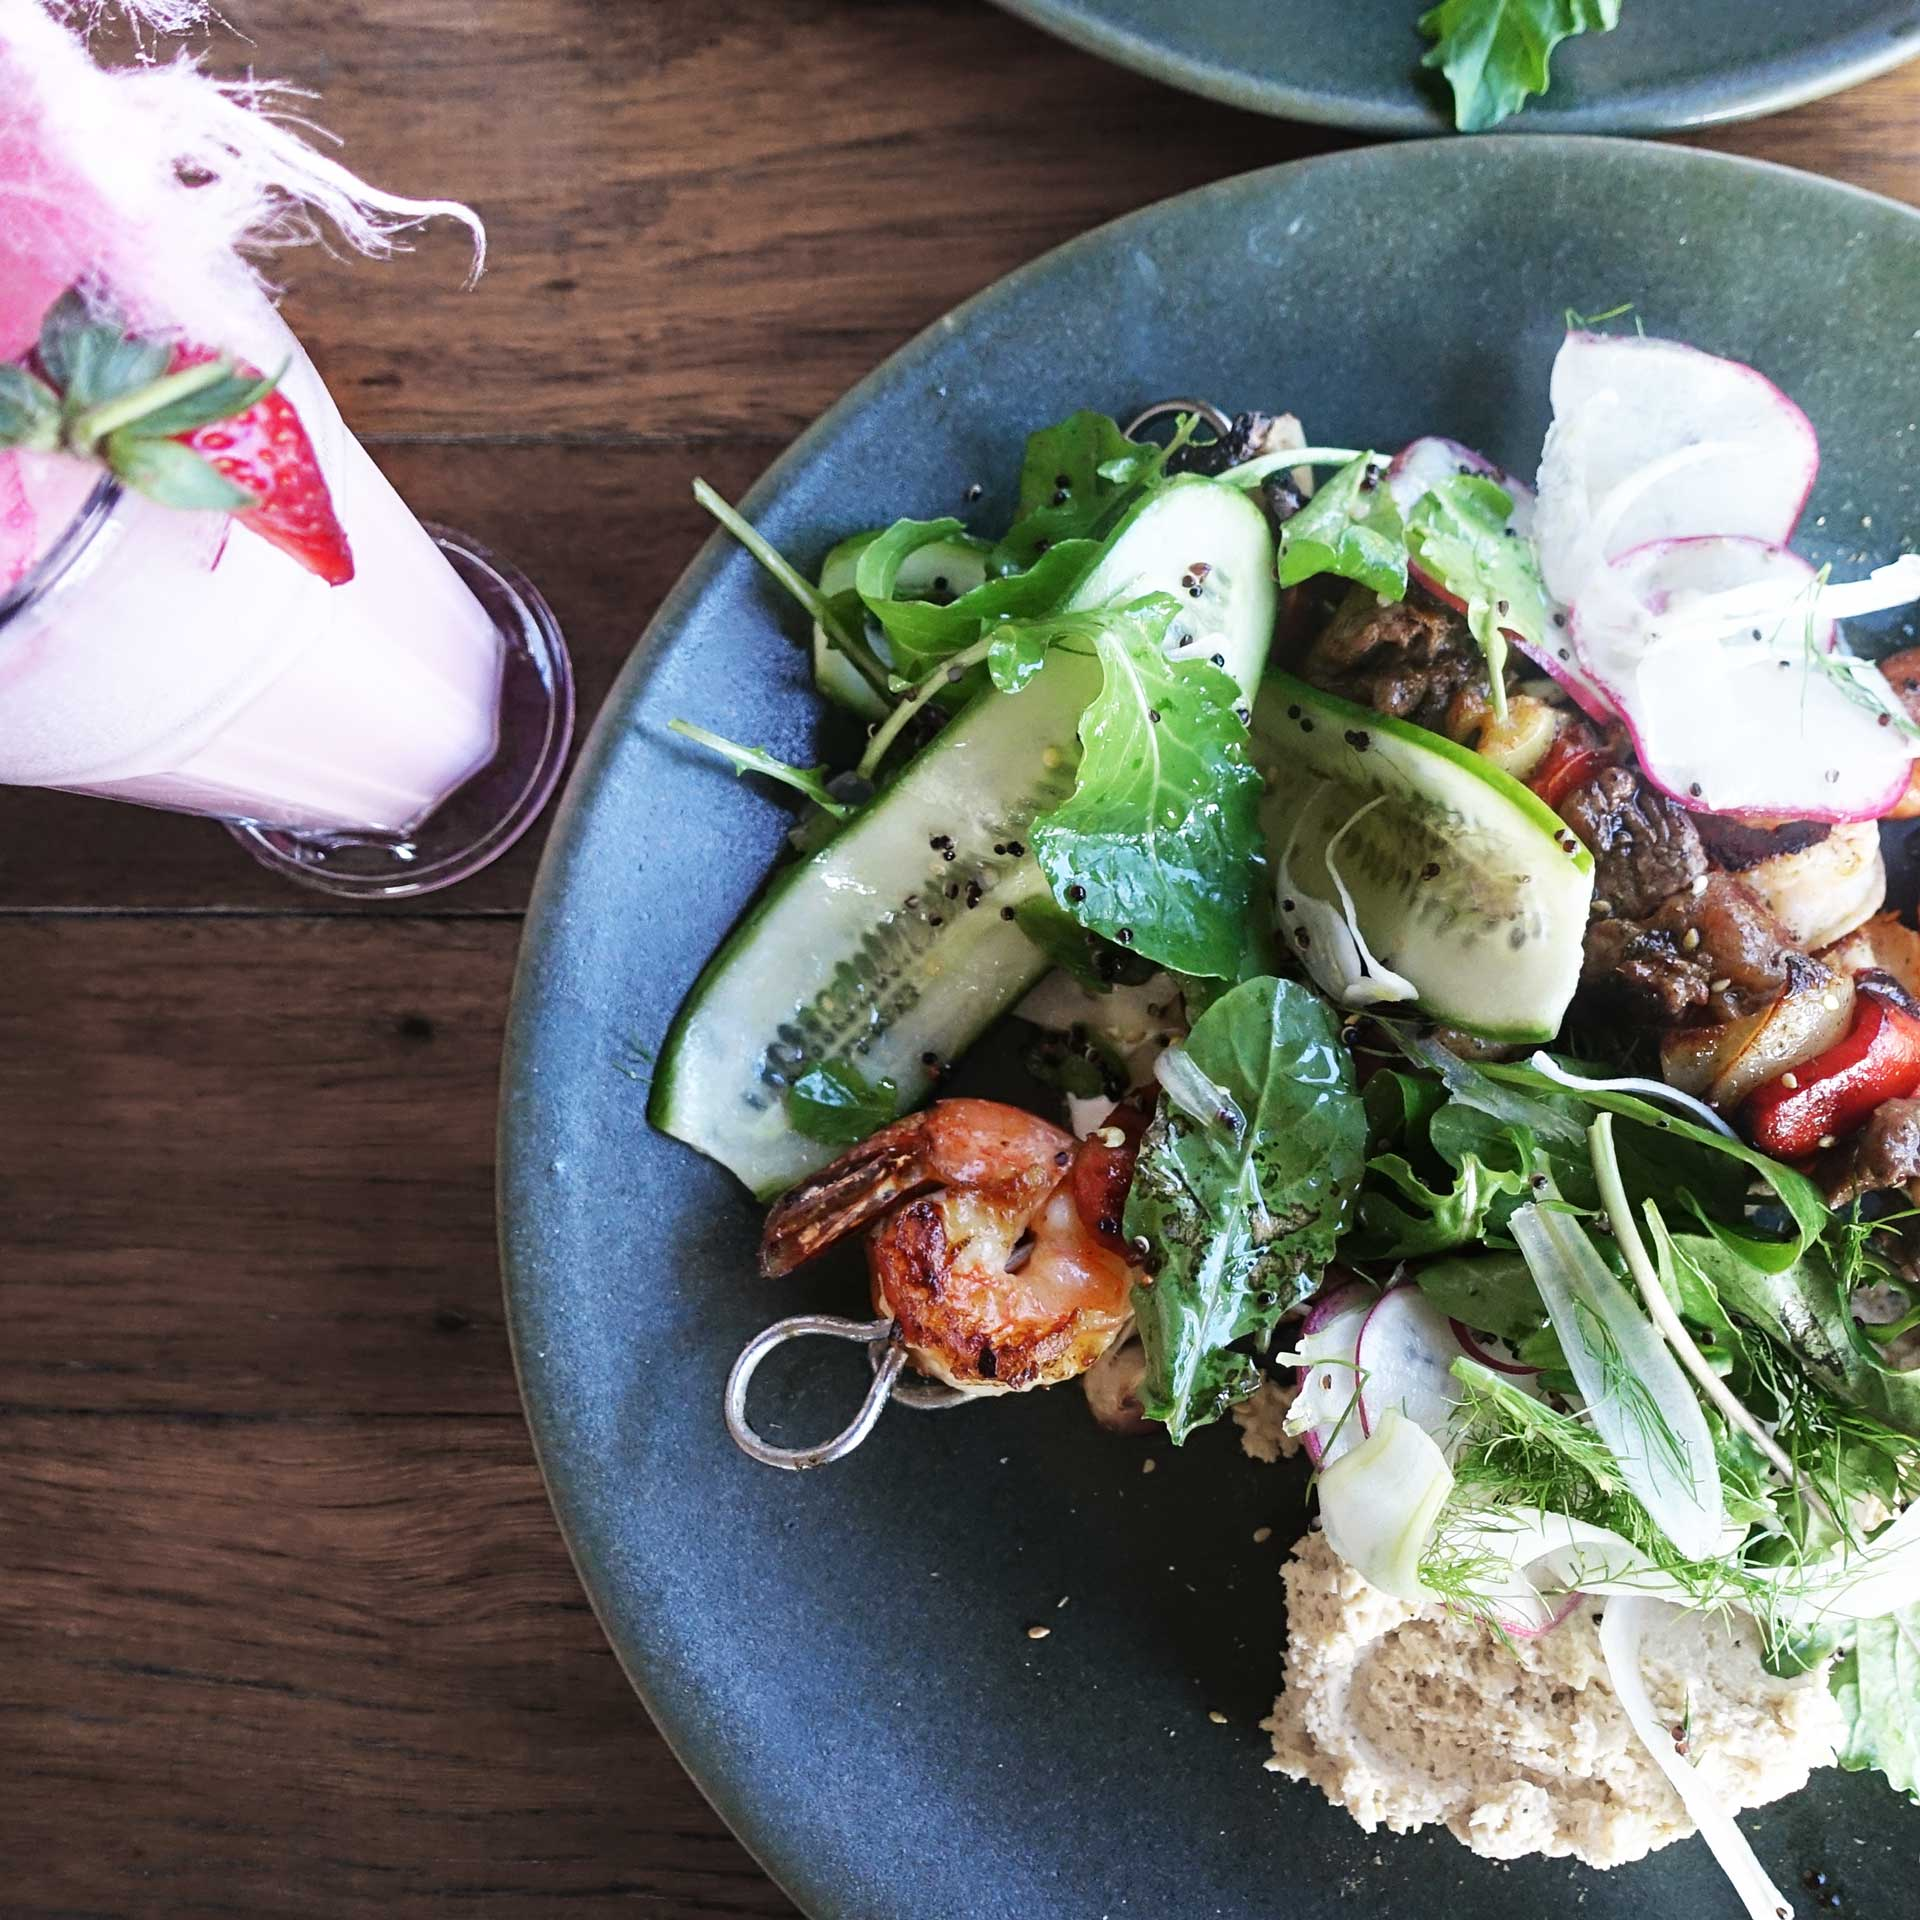 Middle Eastern Grill, Countrside Brunch at Wildpear Cafe, Dural